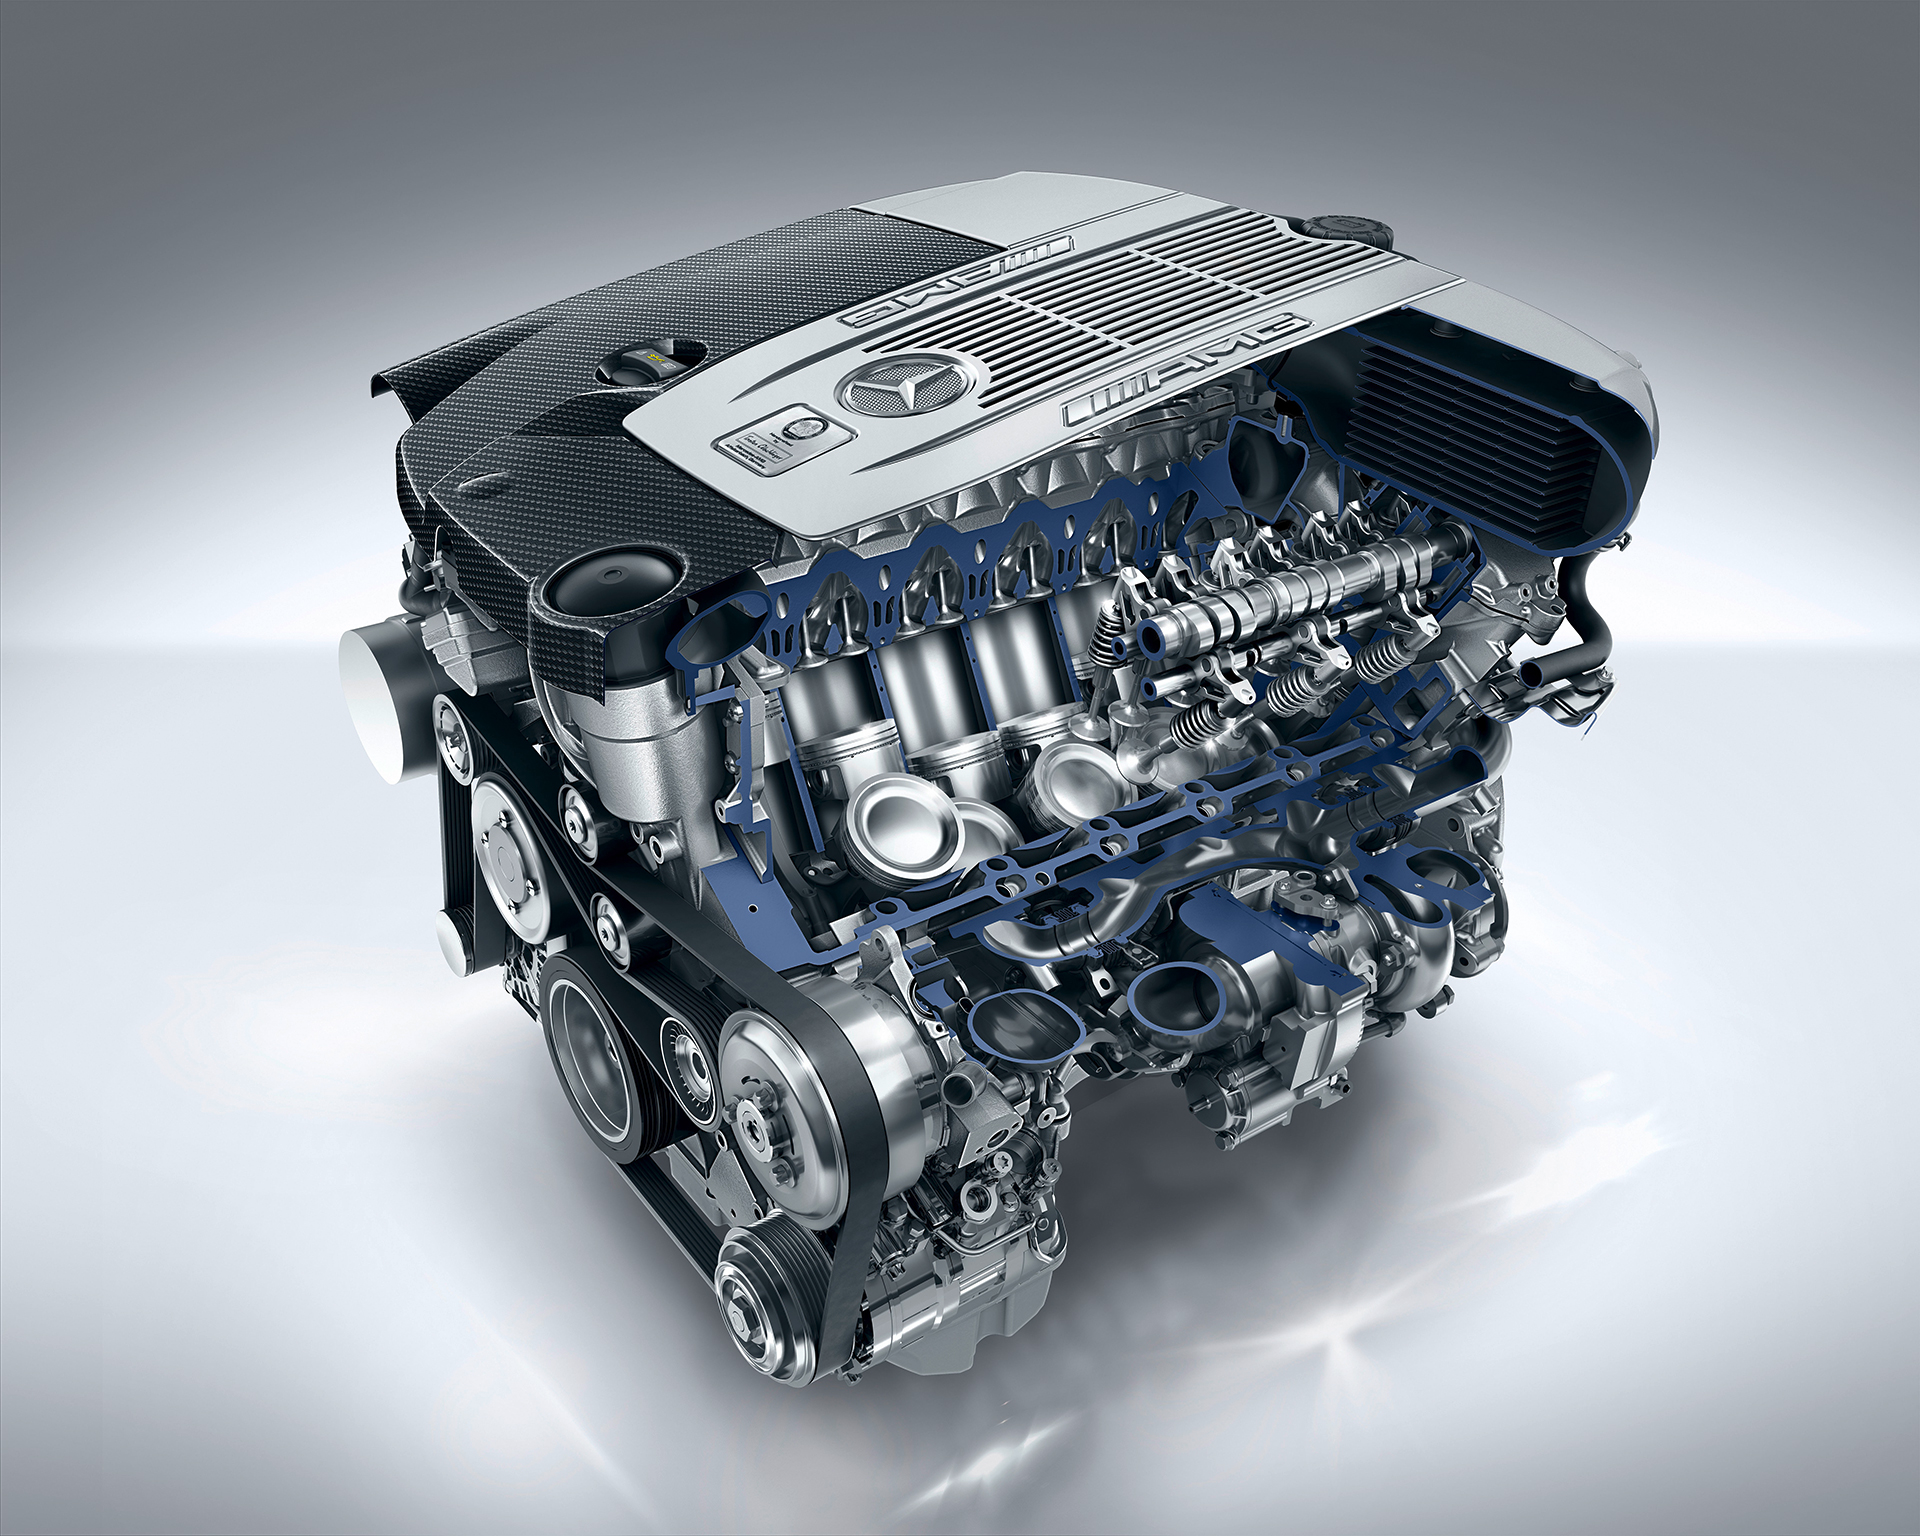 Mercedes-AMG 6.0-litre V12 biturbo engine - illustration / artwork inside